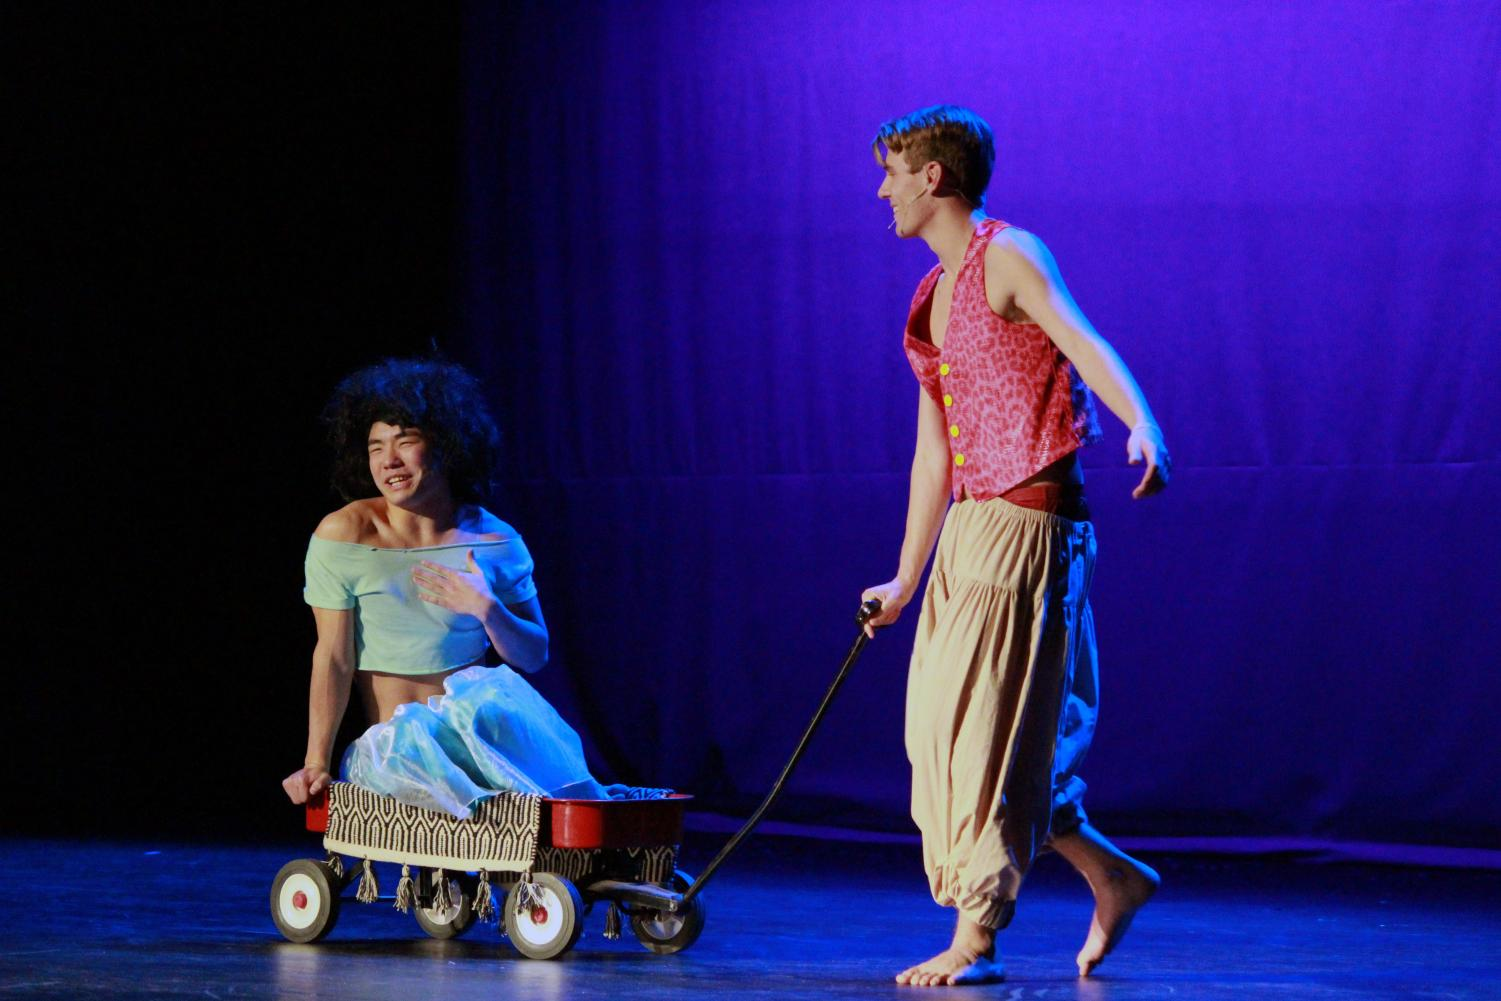 Junior Suman Wang rides on the 'magic carpet' helping senior Will Erickson with his performance of the beloved Disney movie